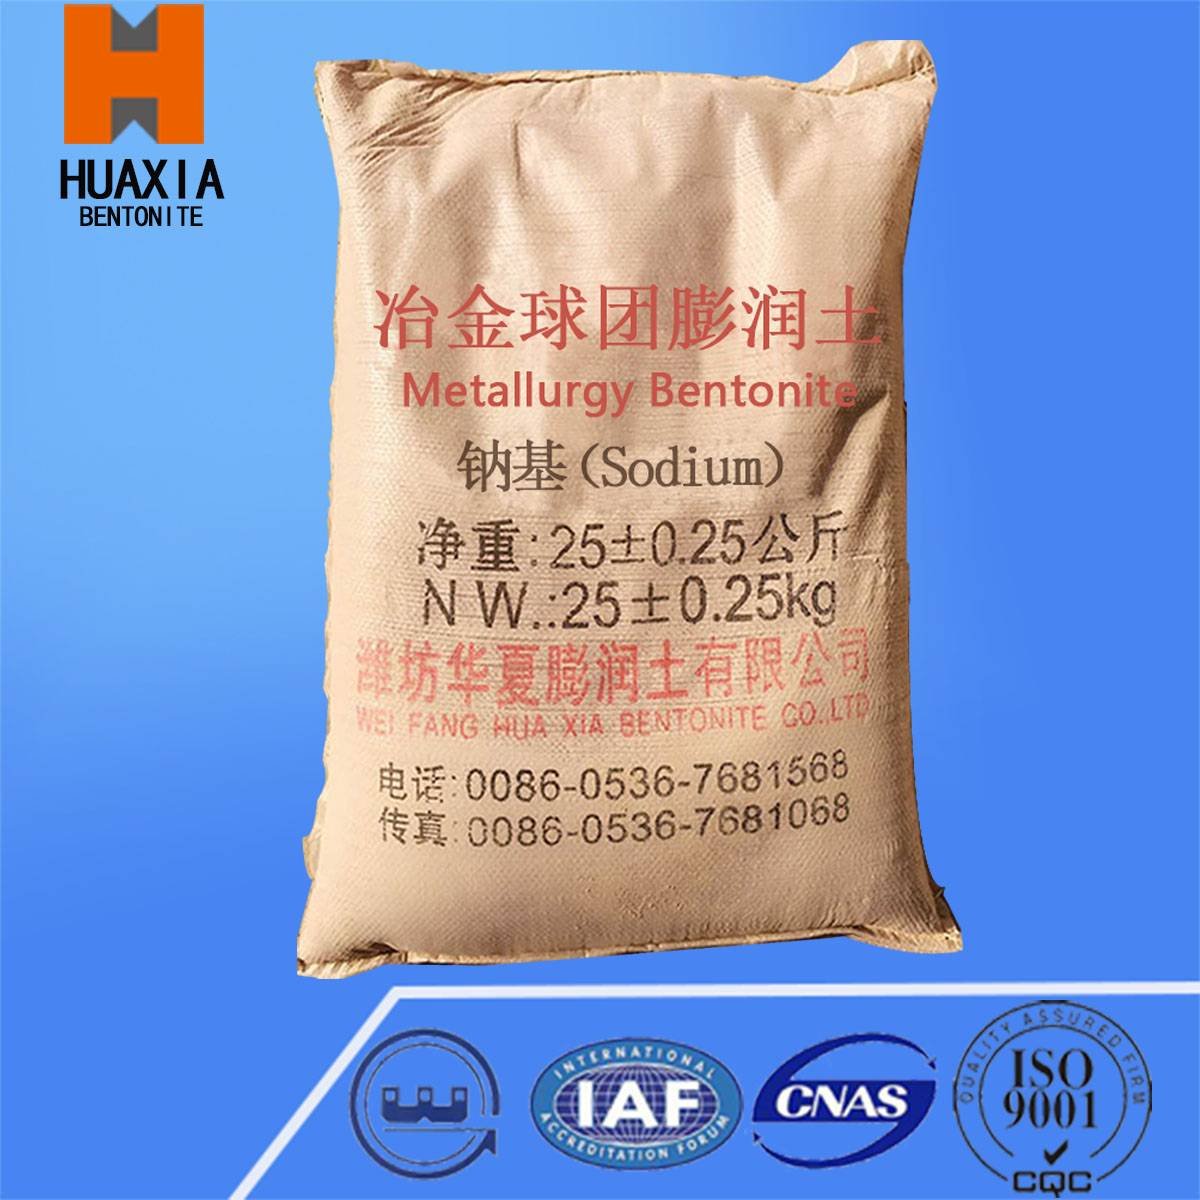 Metallurgy Bentonite